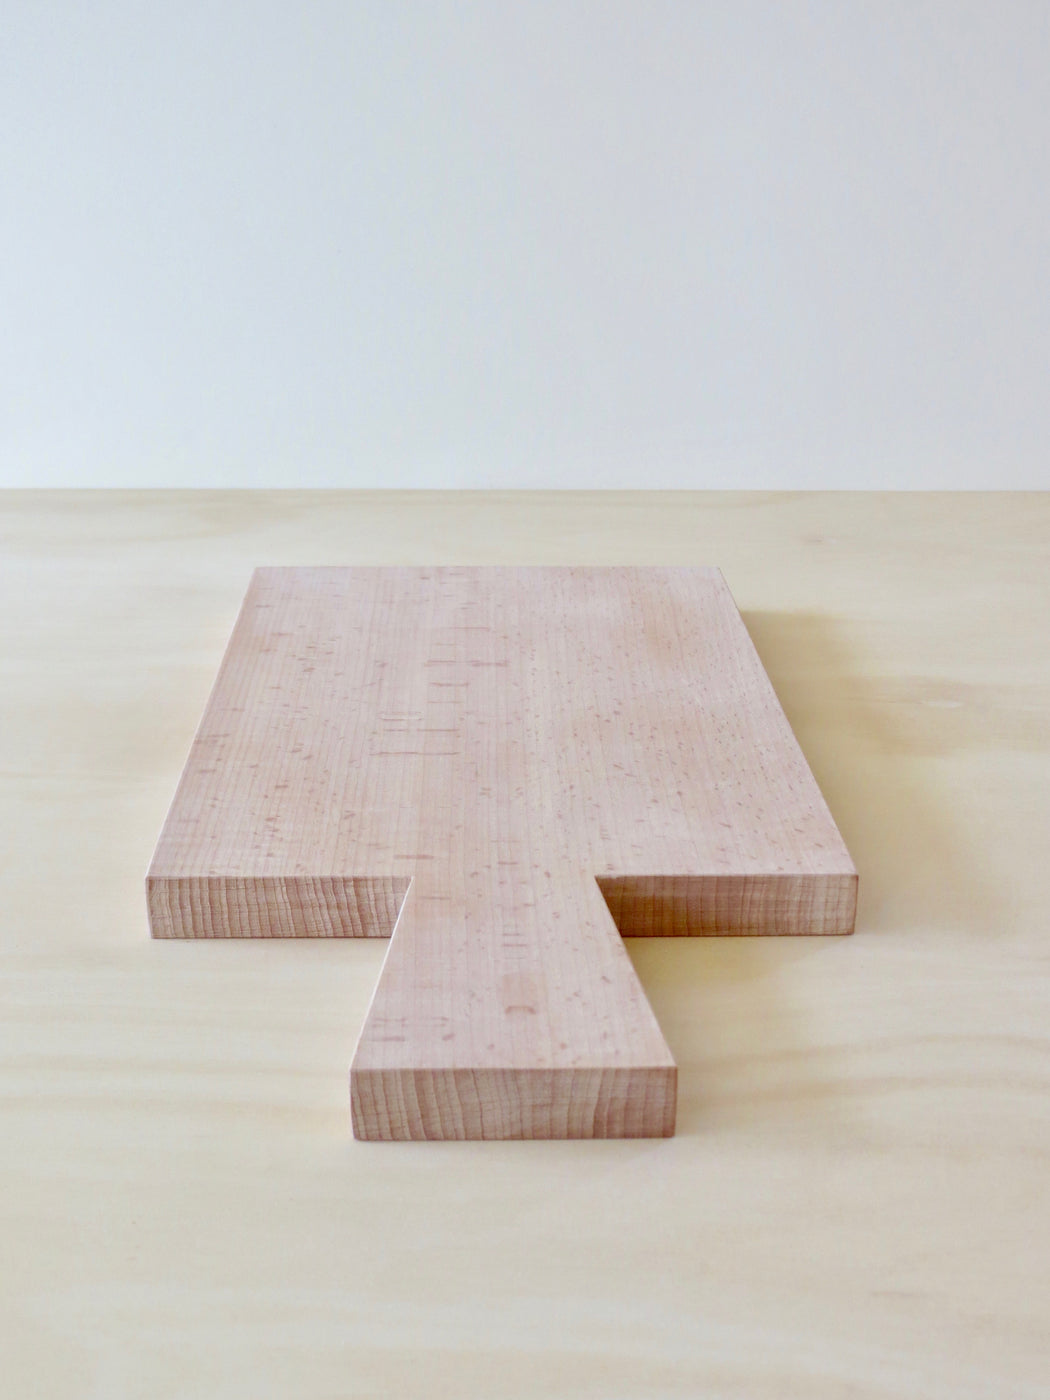 Beech chopping board with handle